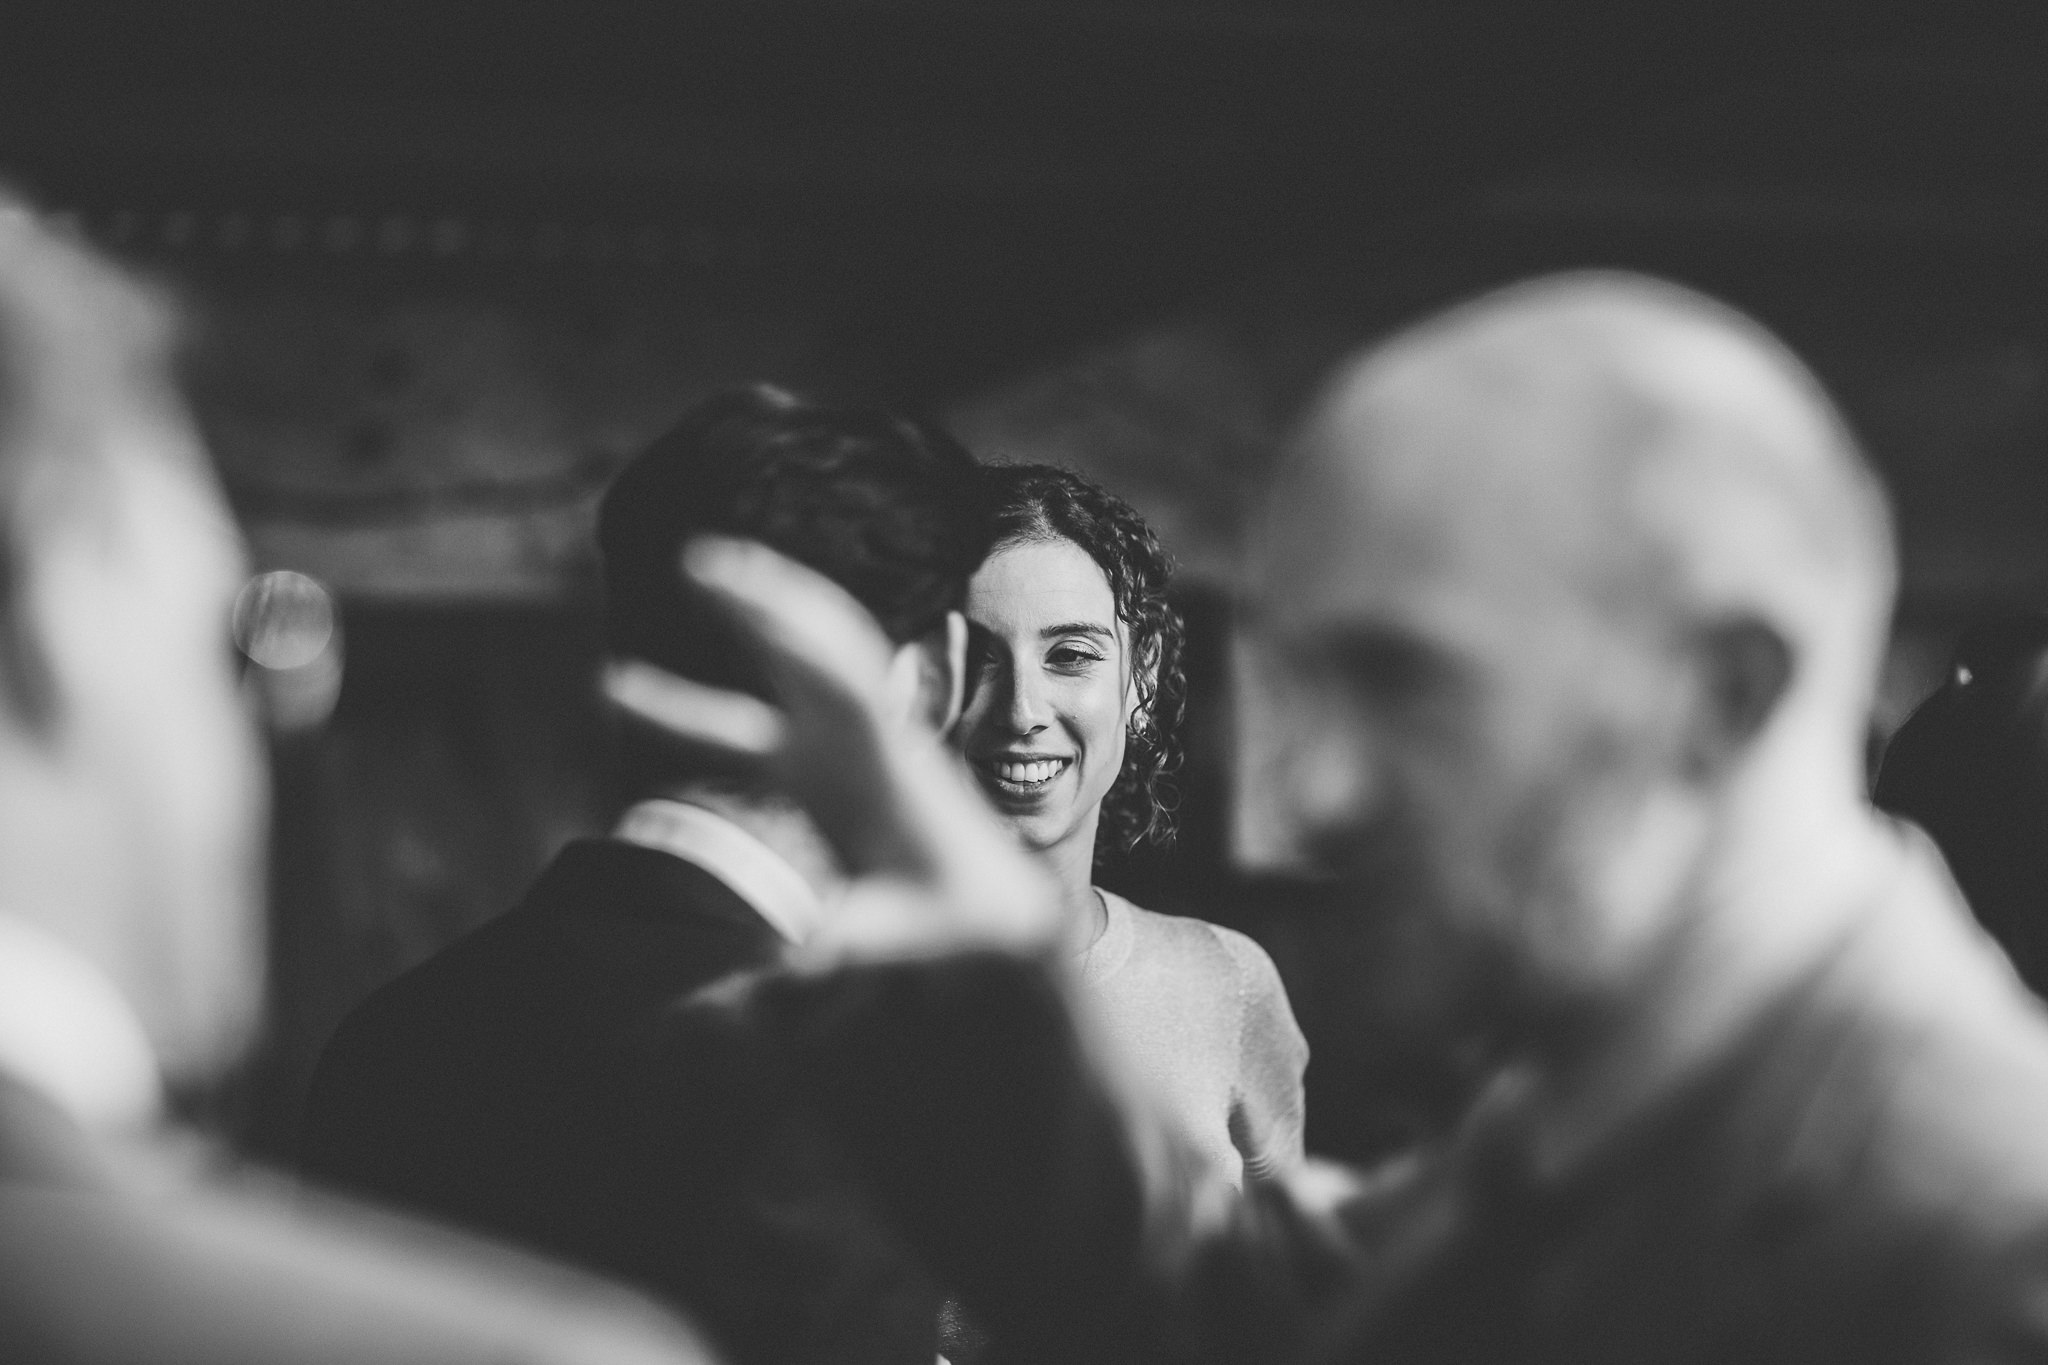 paul-marbrook-Fforest-Wedding-Photographer-90056